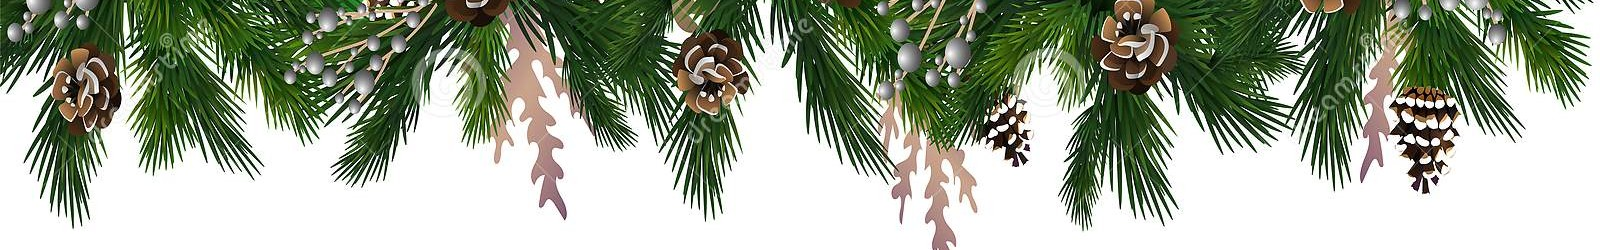 horizontal banner christmas tree garland pine cones hanging gold red balls ribbons great flyers posters 133394921